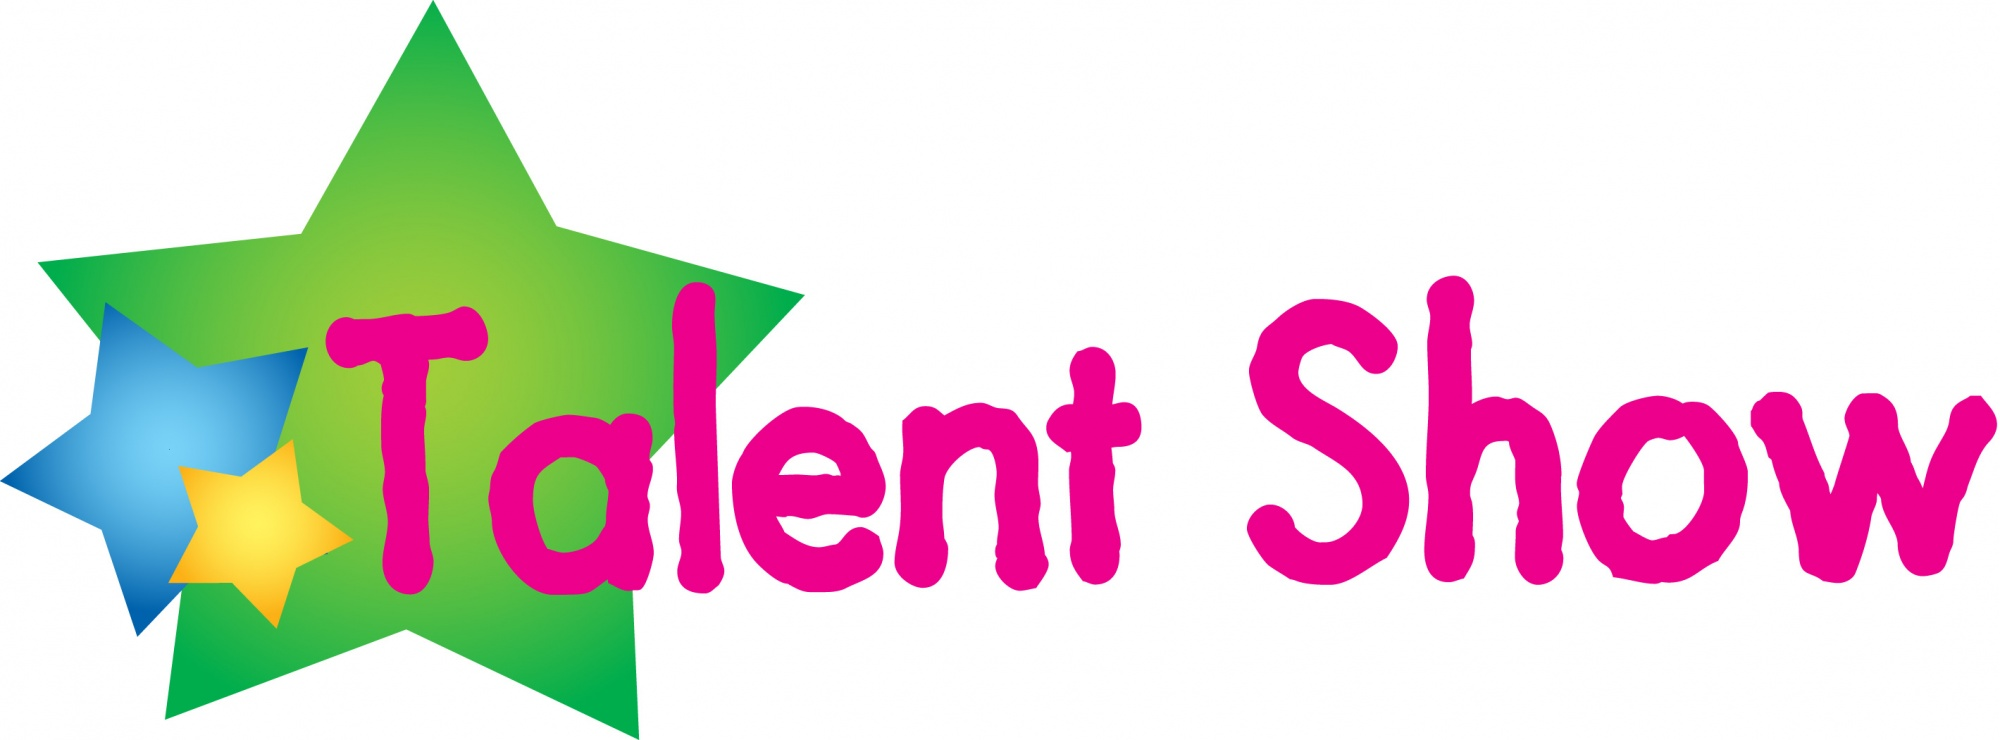 64 Images Of Talent Show Poster You Can Use These Free Cliparts For